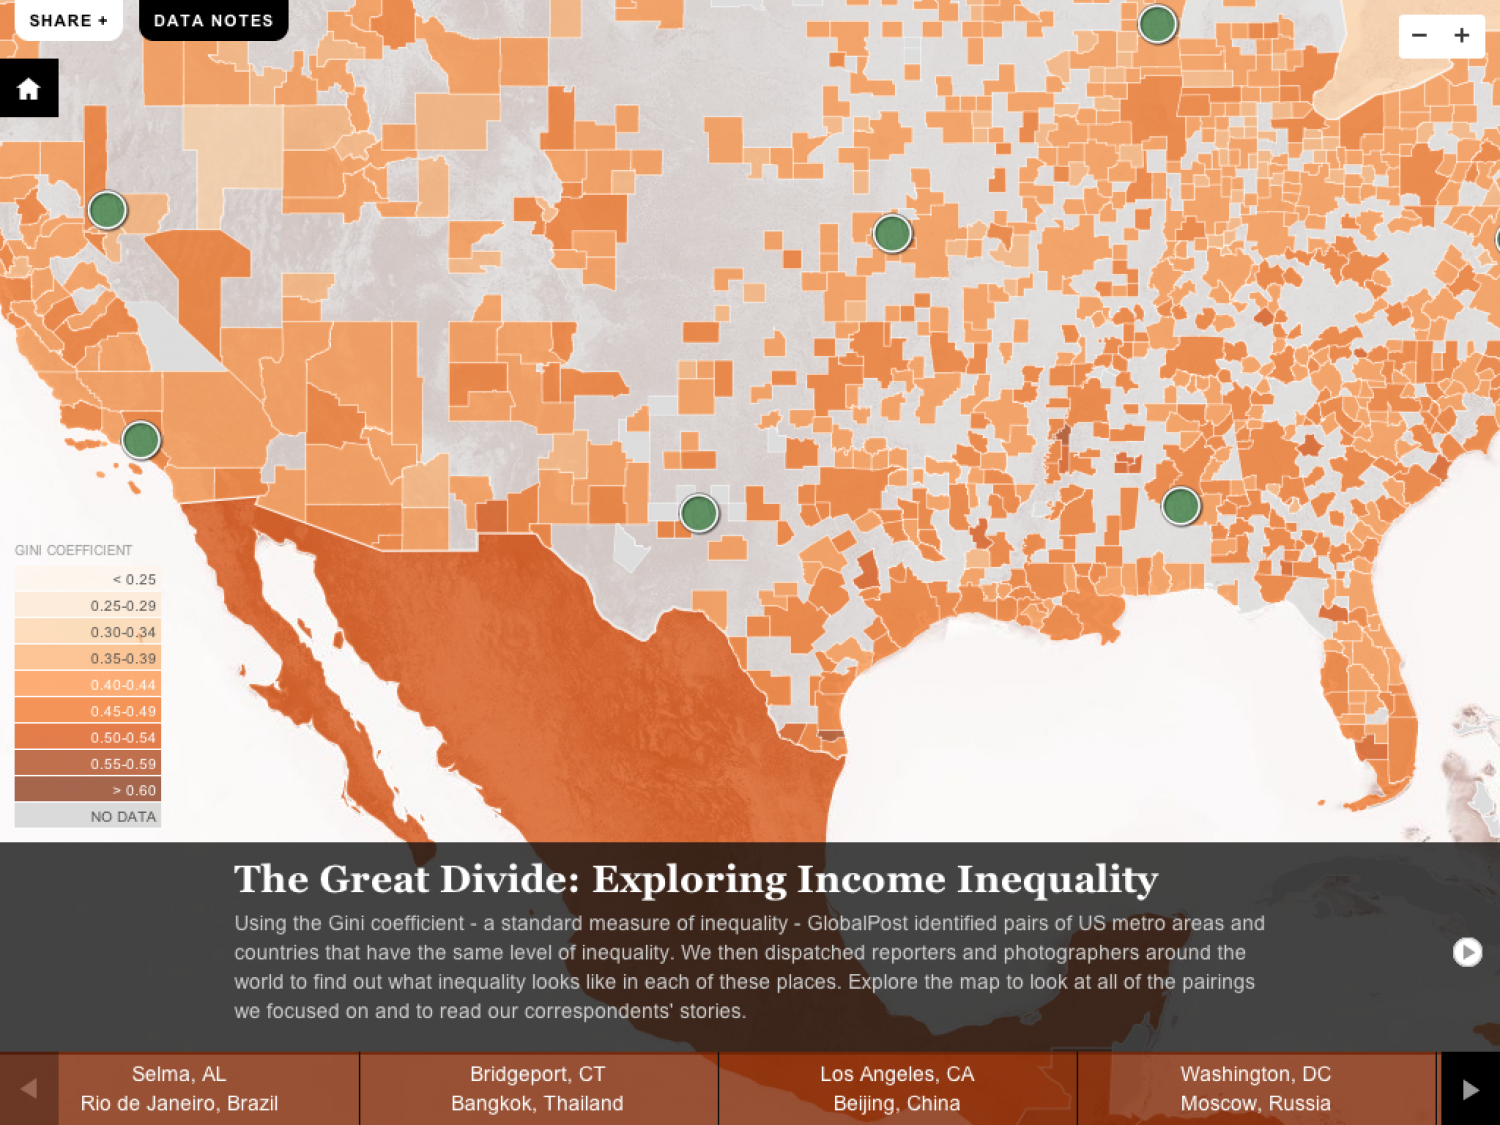 The Great Divide: Global income inequality and its cost Infographic